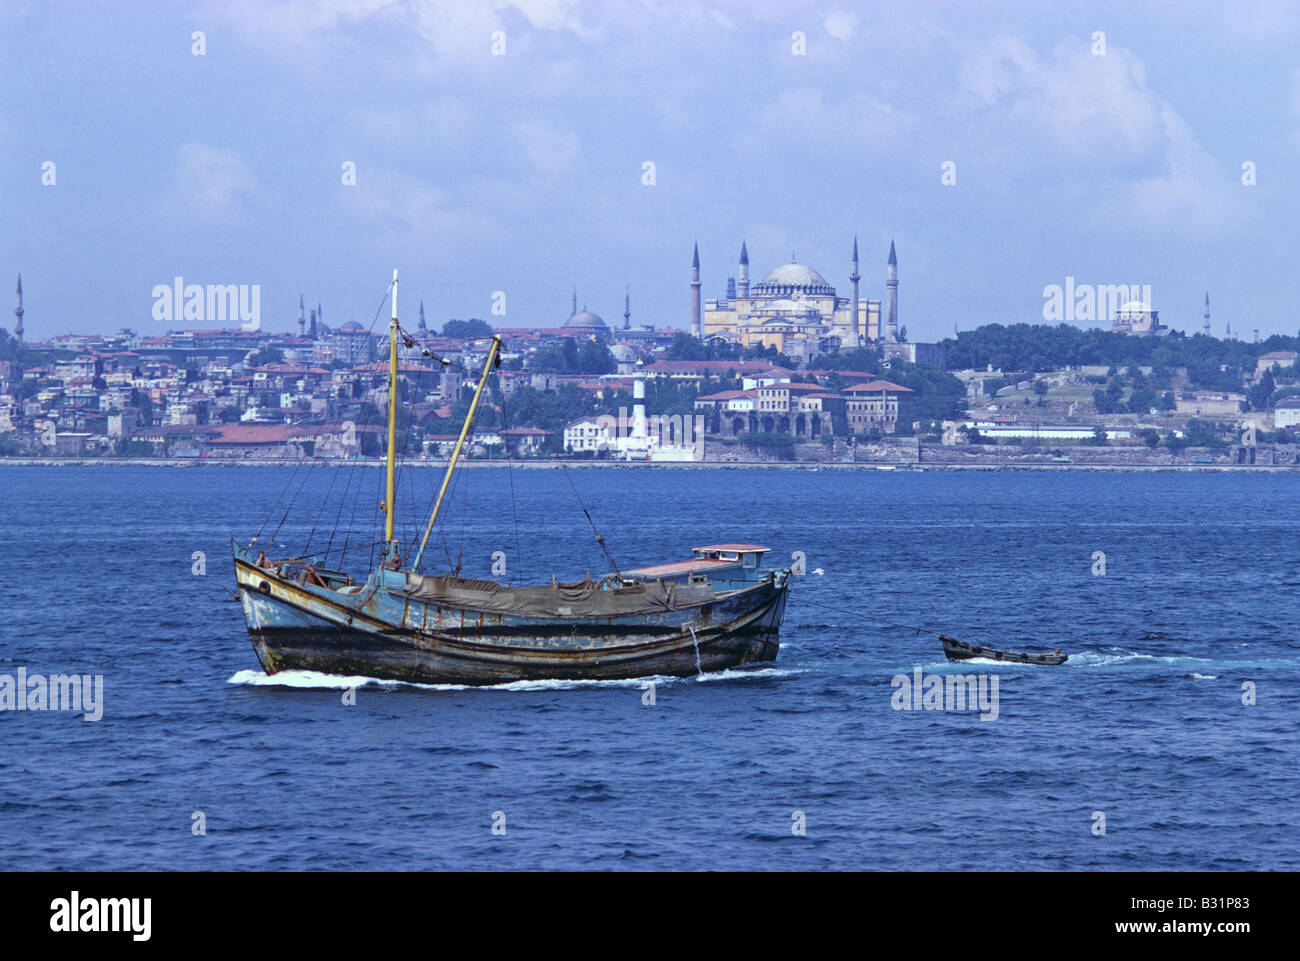 small-boat-in-the-bosphorus-aya-sofya-in-the-background-istanbul-680806-B31P83.jpg